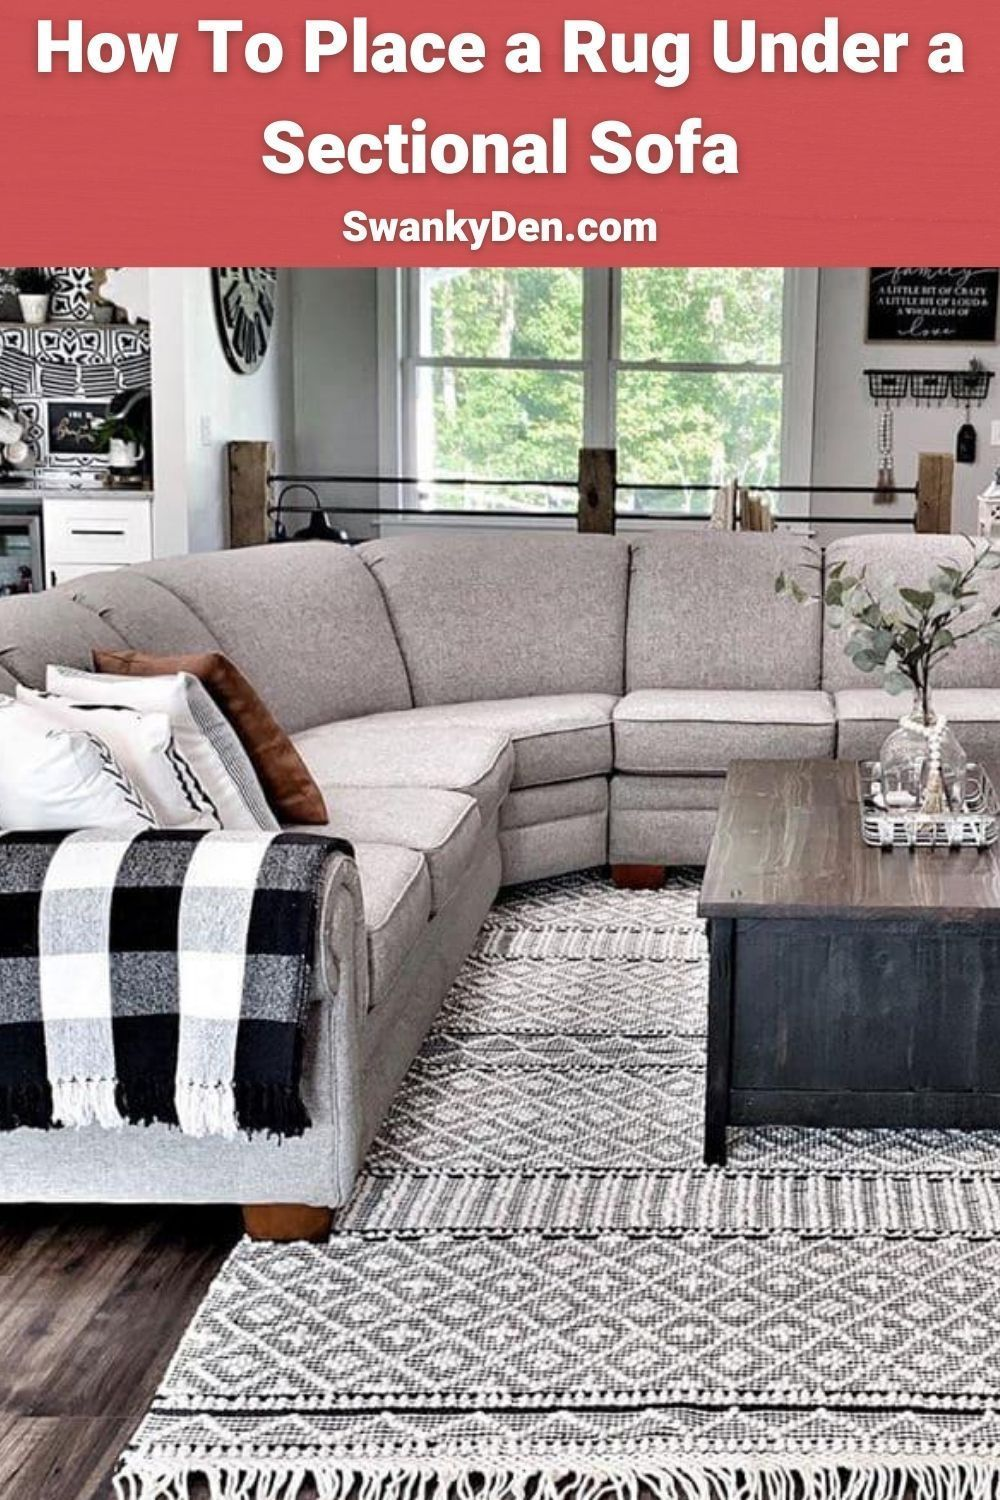 How To Place A Rug Under A Sectional Sofa In 2020 Living Room Rug Placement Area Rug Placement Living Room Sectional Sofa #rug #placement #living #room #sectional